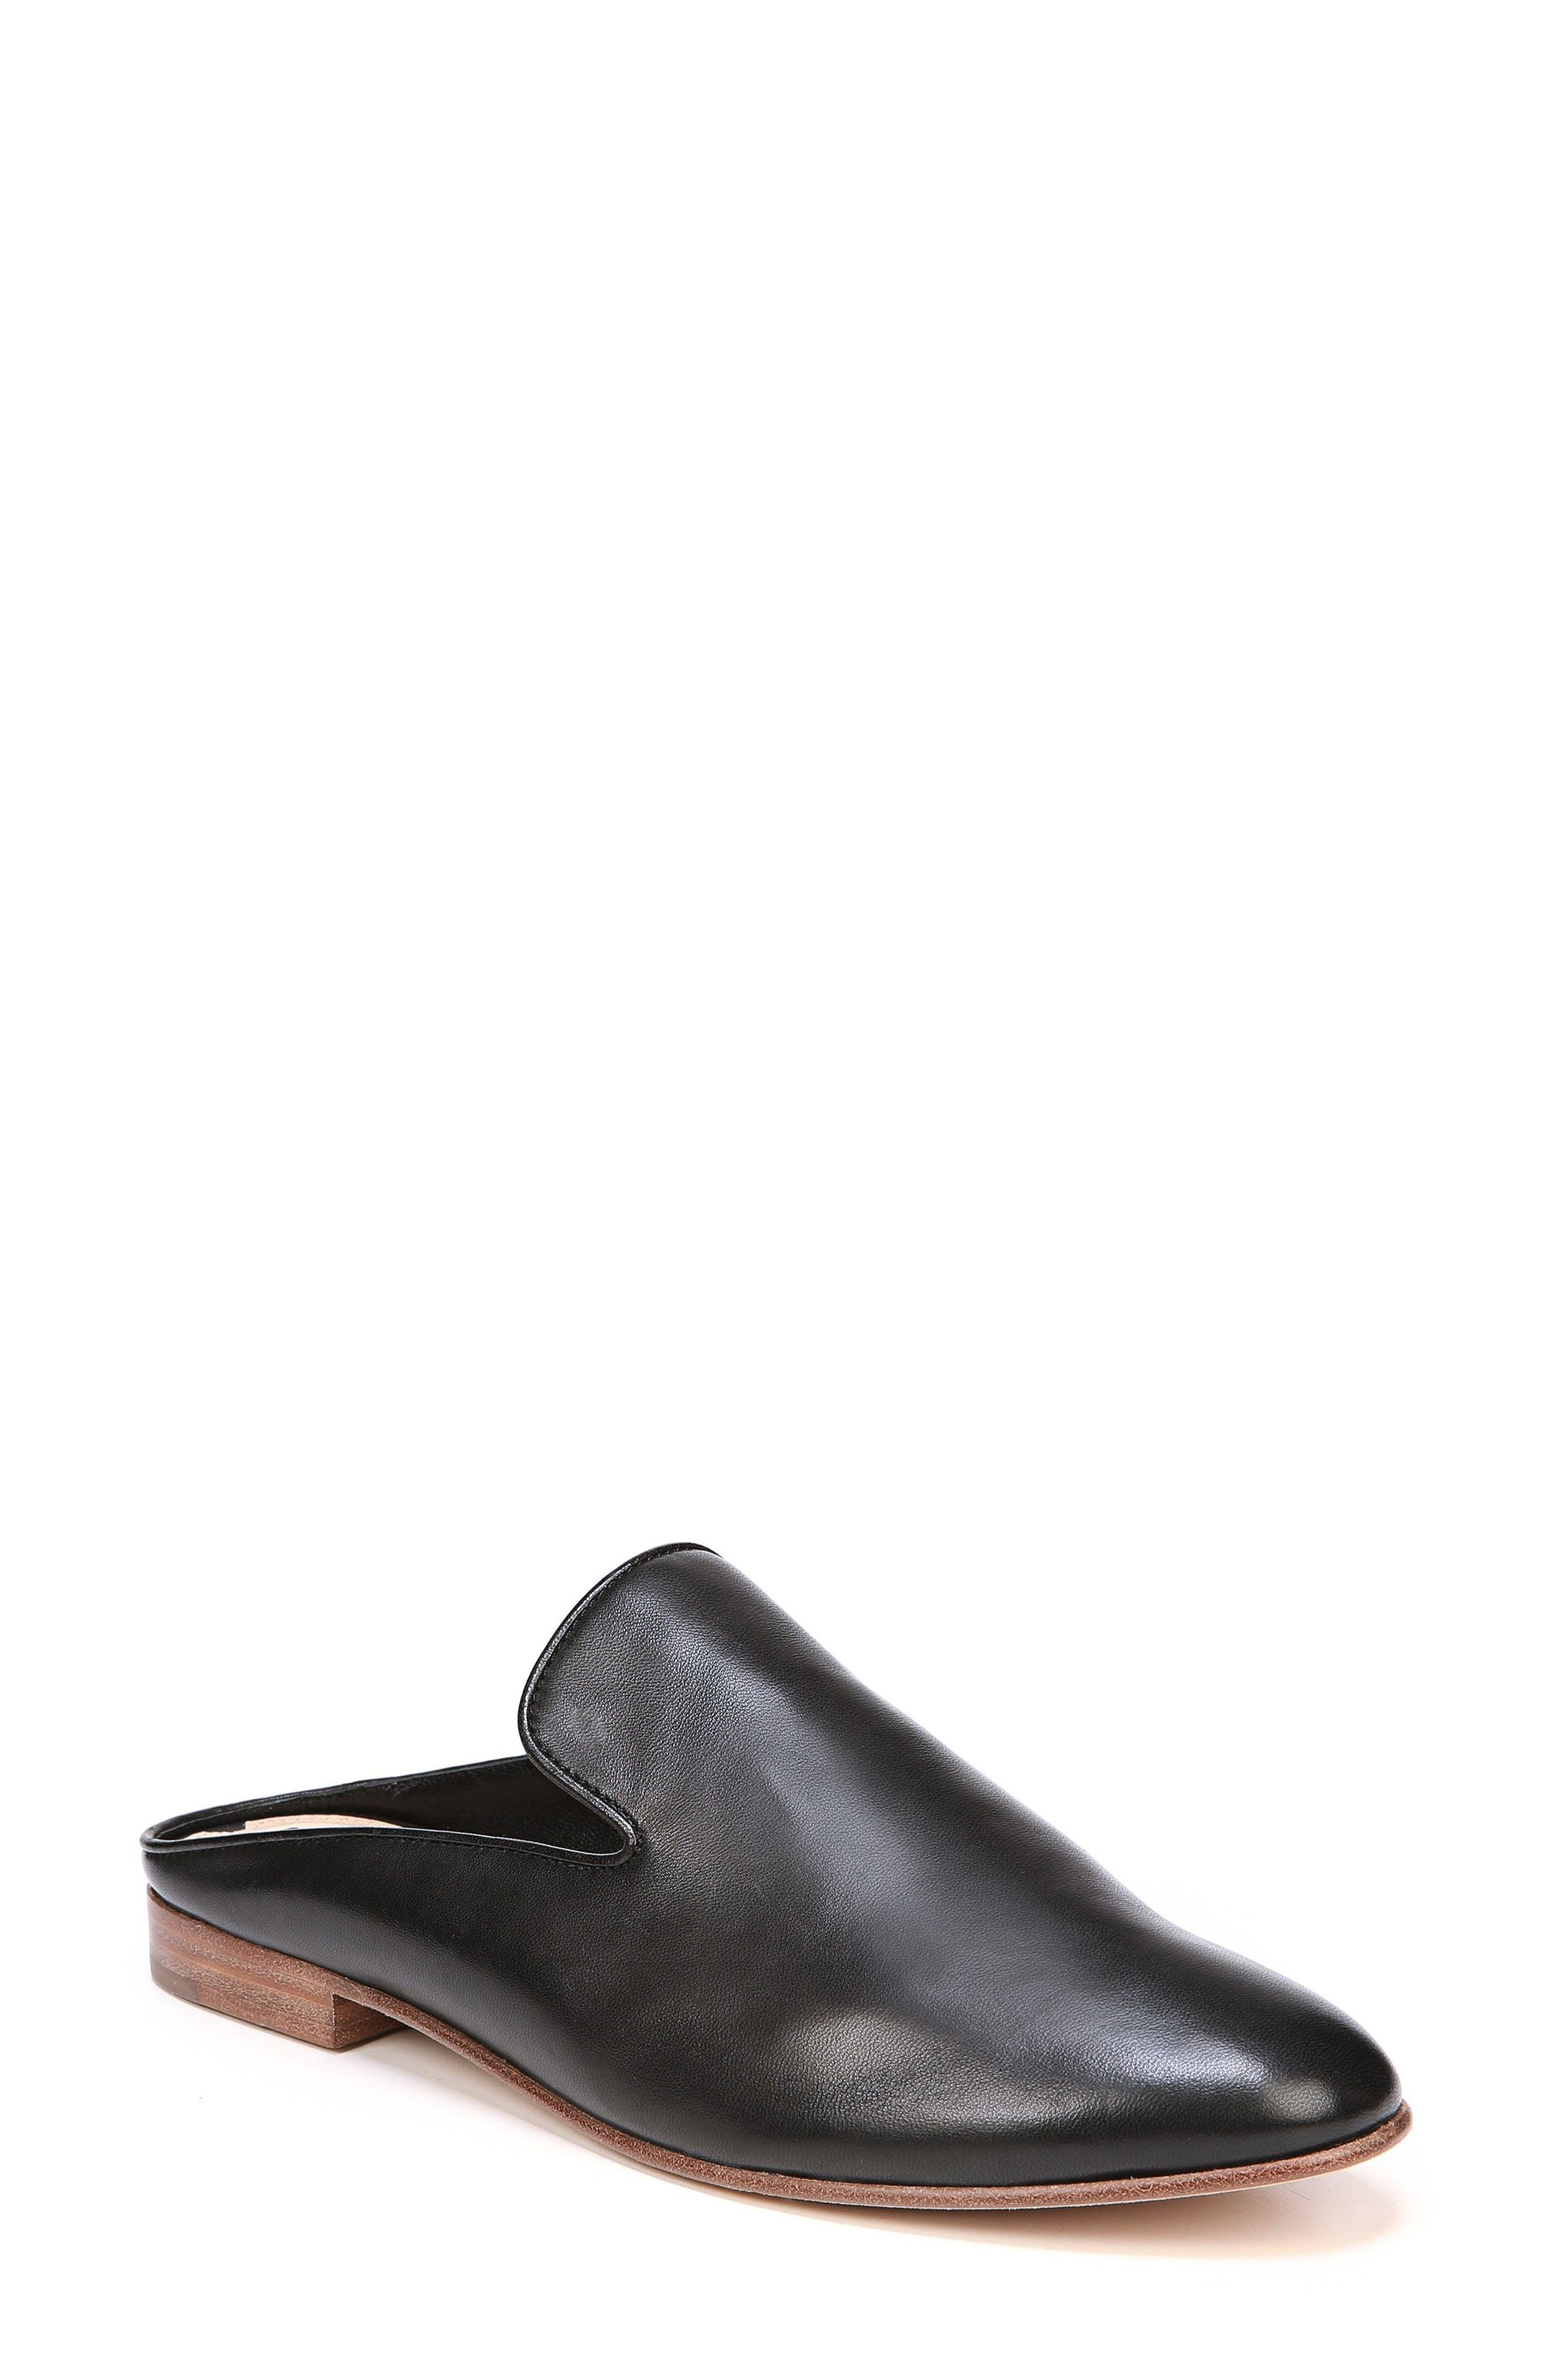 Yeo Loafer Mule,                         Main,                         color, 003